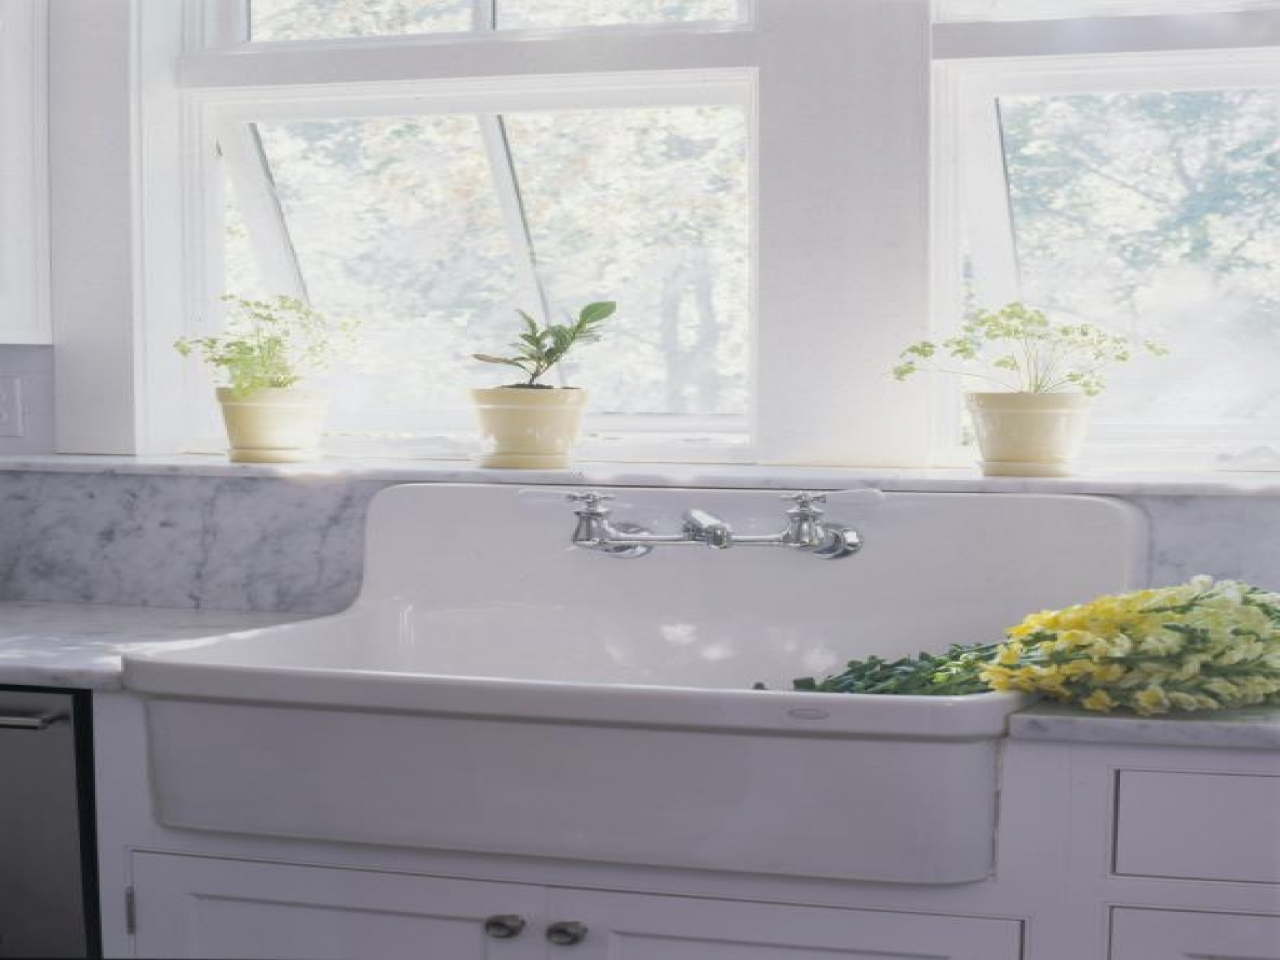 American standard cast iron sink porcelain farmhouse